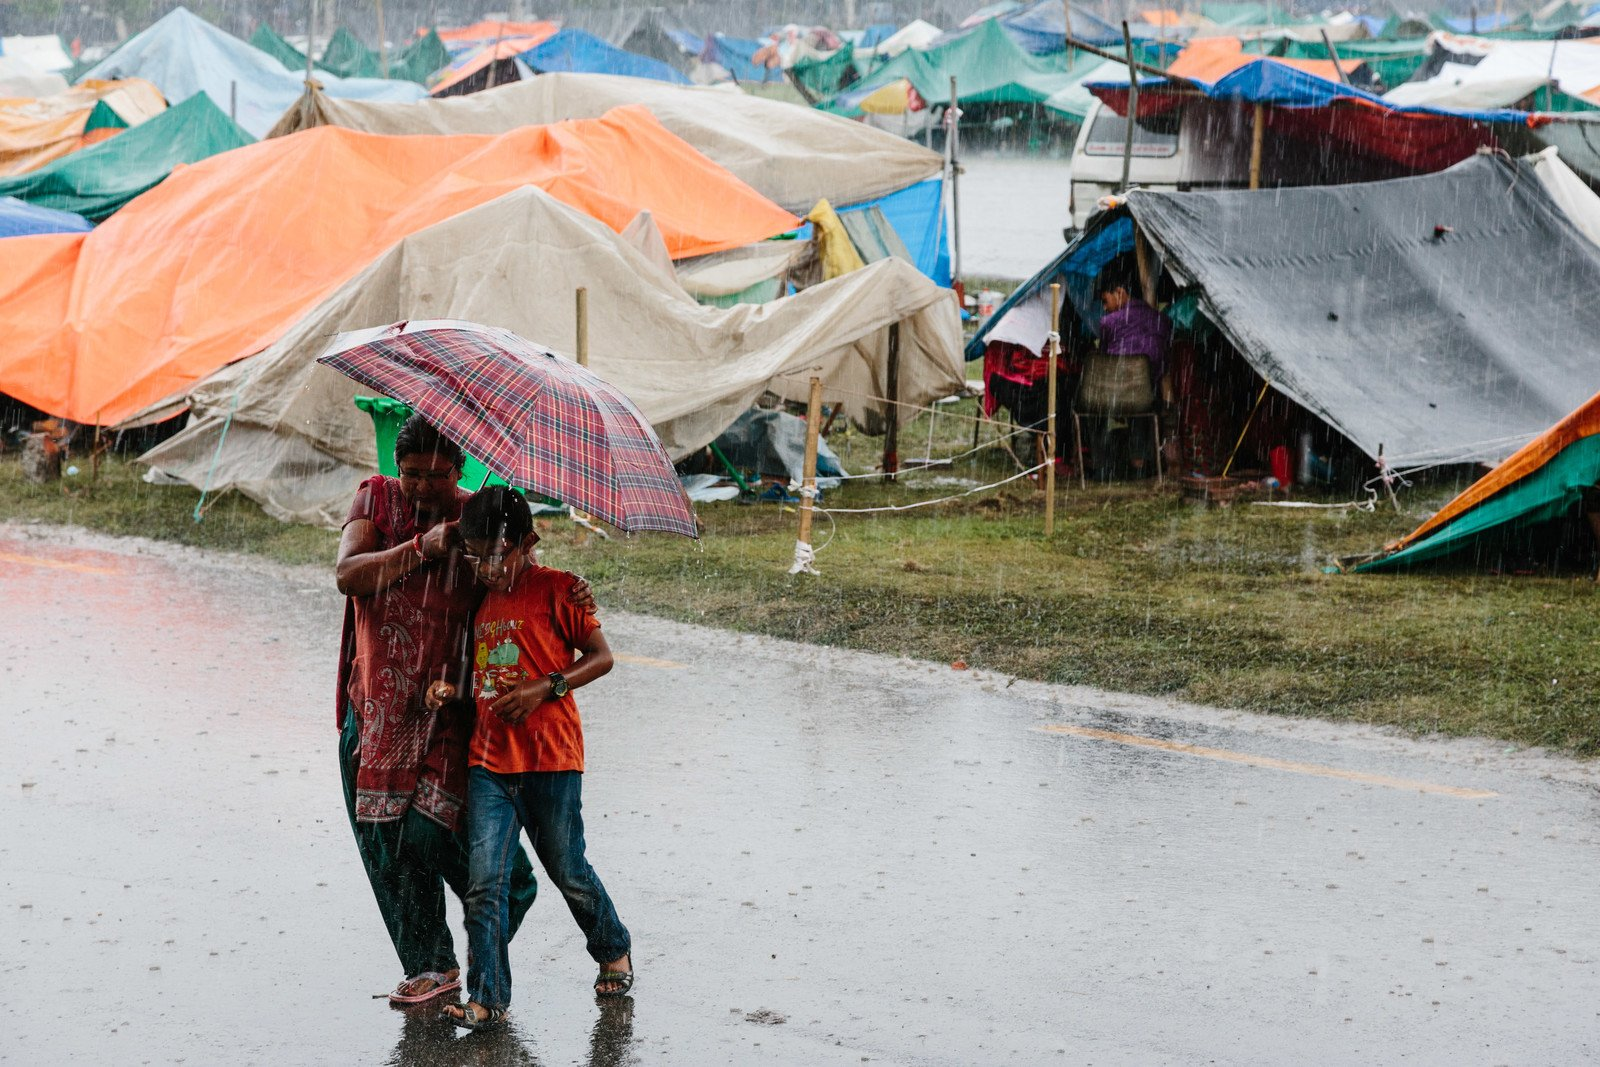 Worried about aftershocks, earthquake survivors were forced to sleep out in the open for days. Heavy rain has also made their situation more difficult. (Photo: Aubrey Wade / Oxfam)